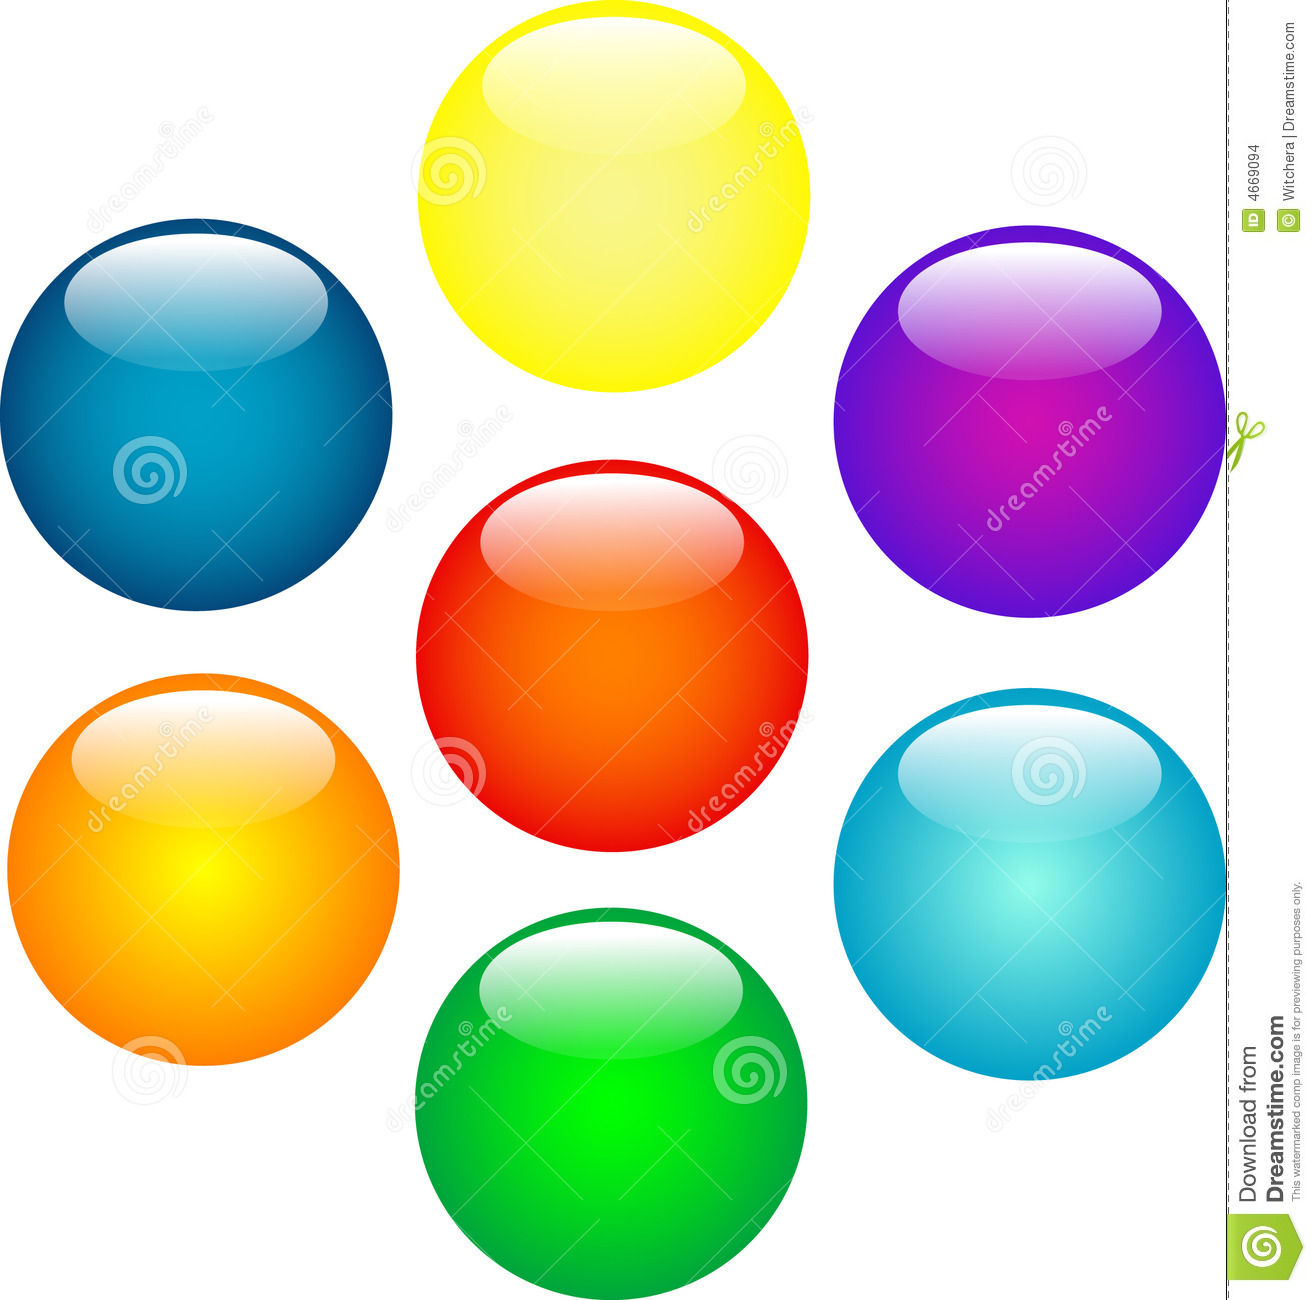 Pencil and in color. Ball clipart colored